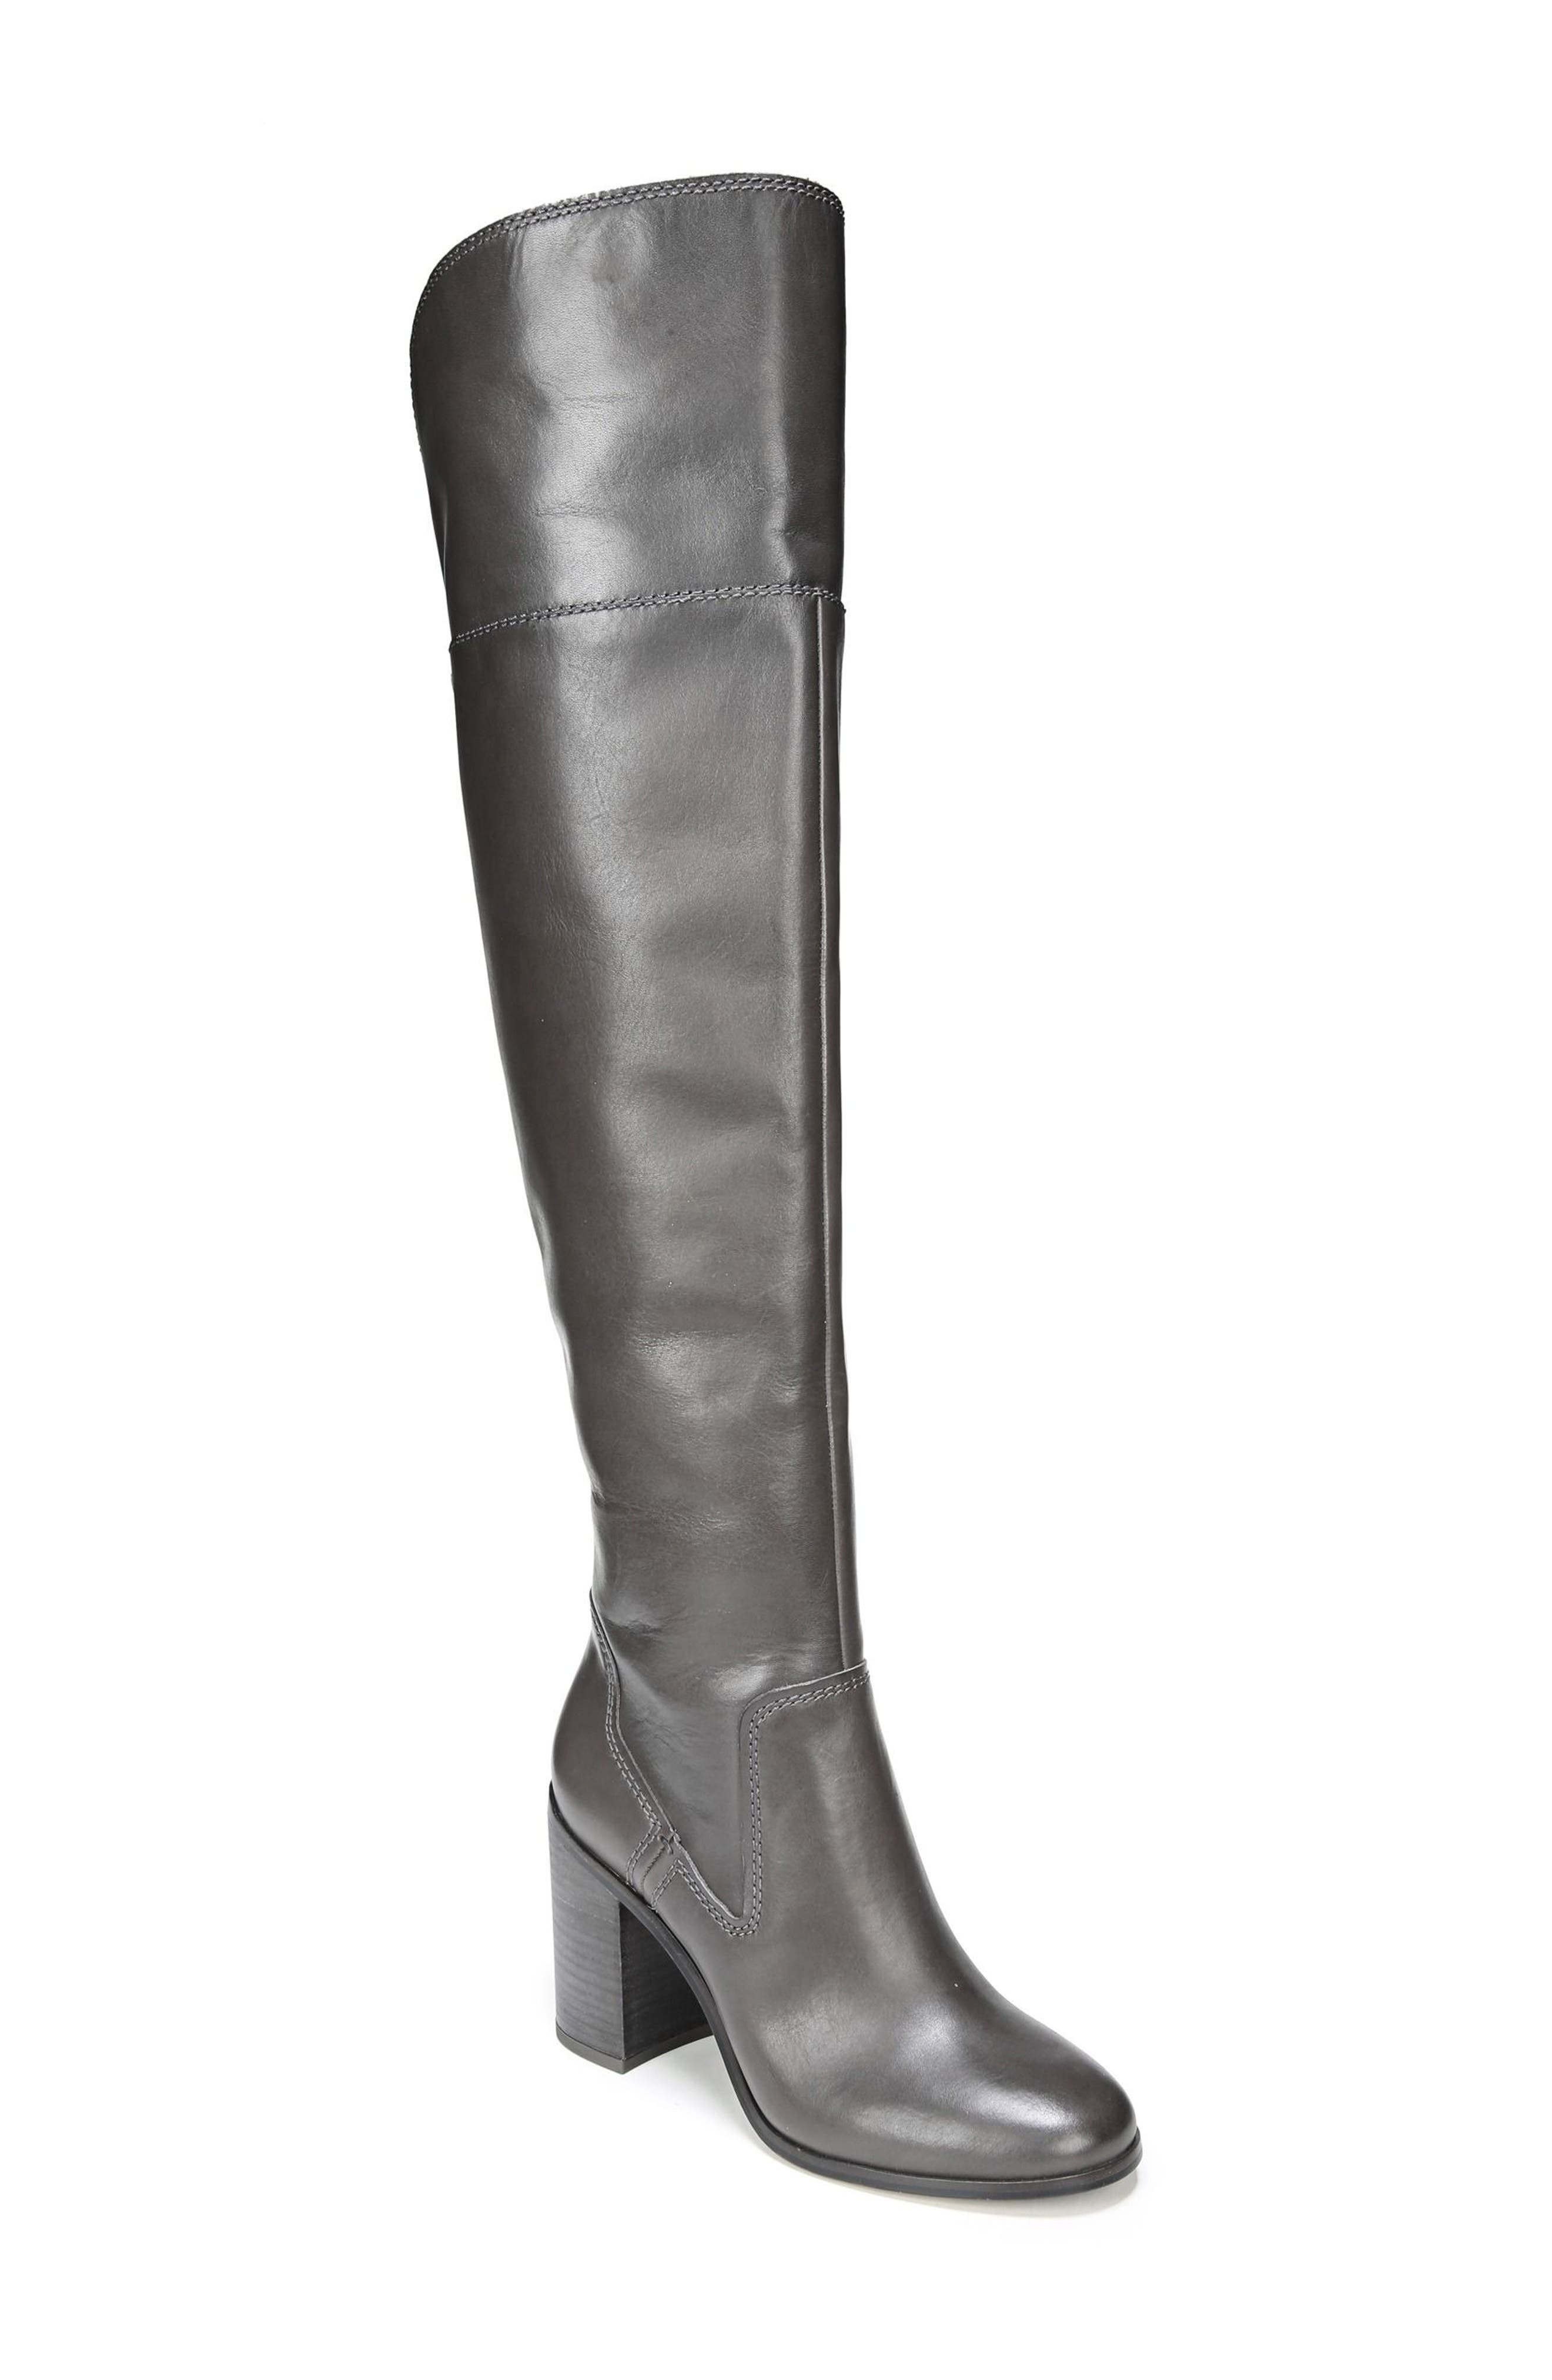 Freda Over the Knee Boot,                         Main,                         color, Peat Leather